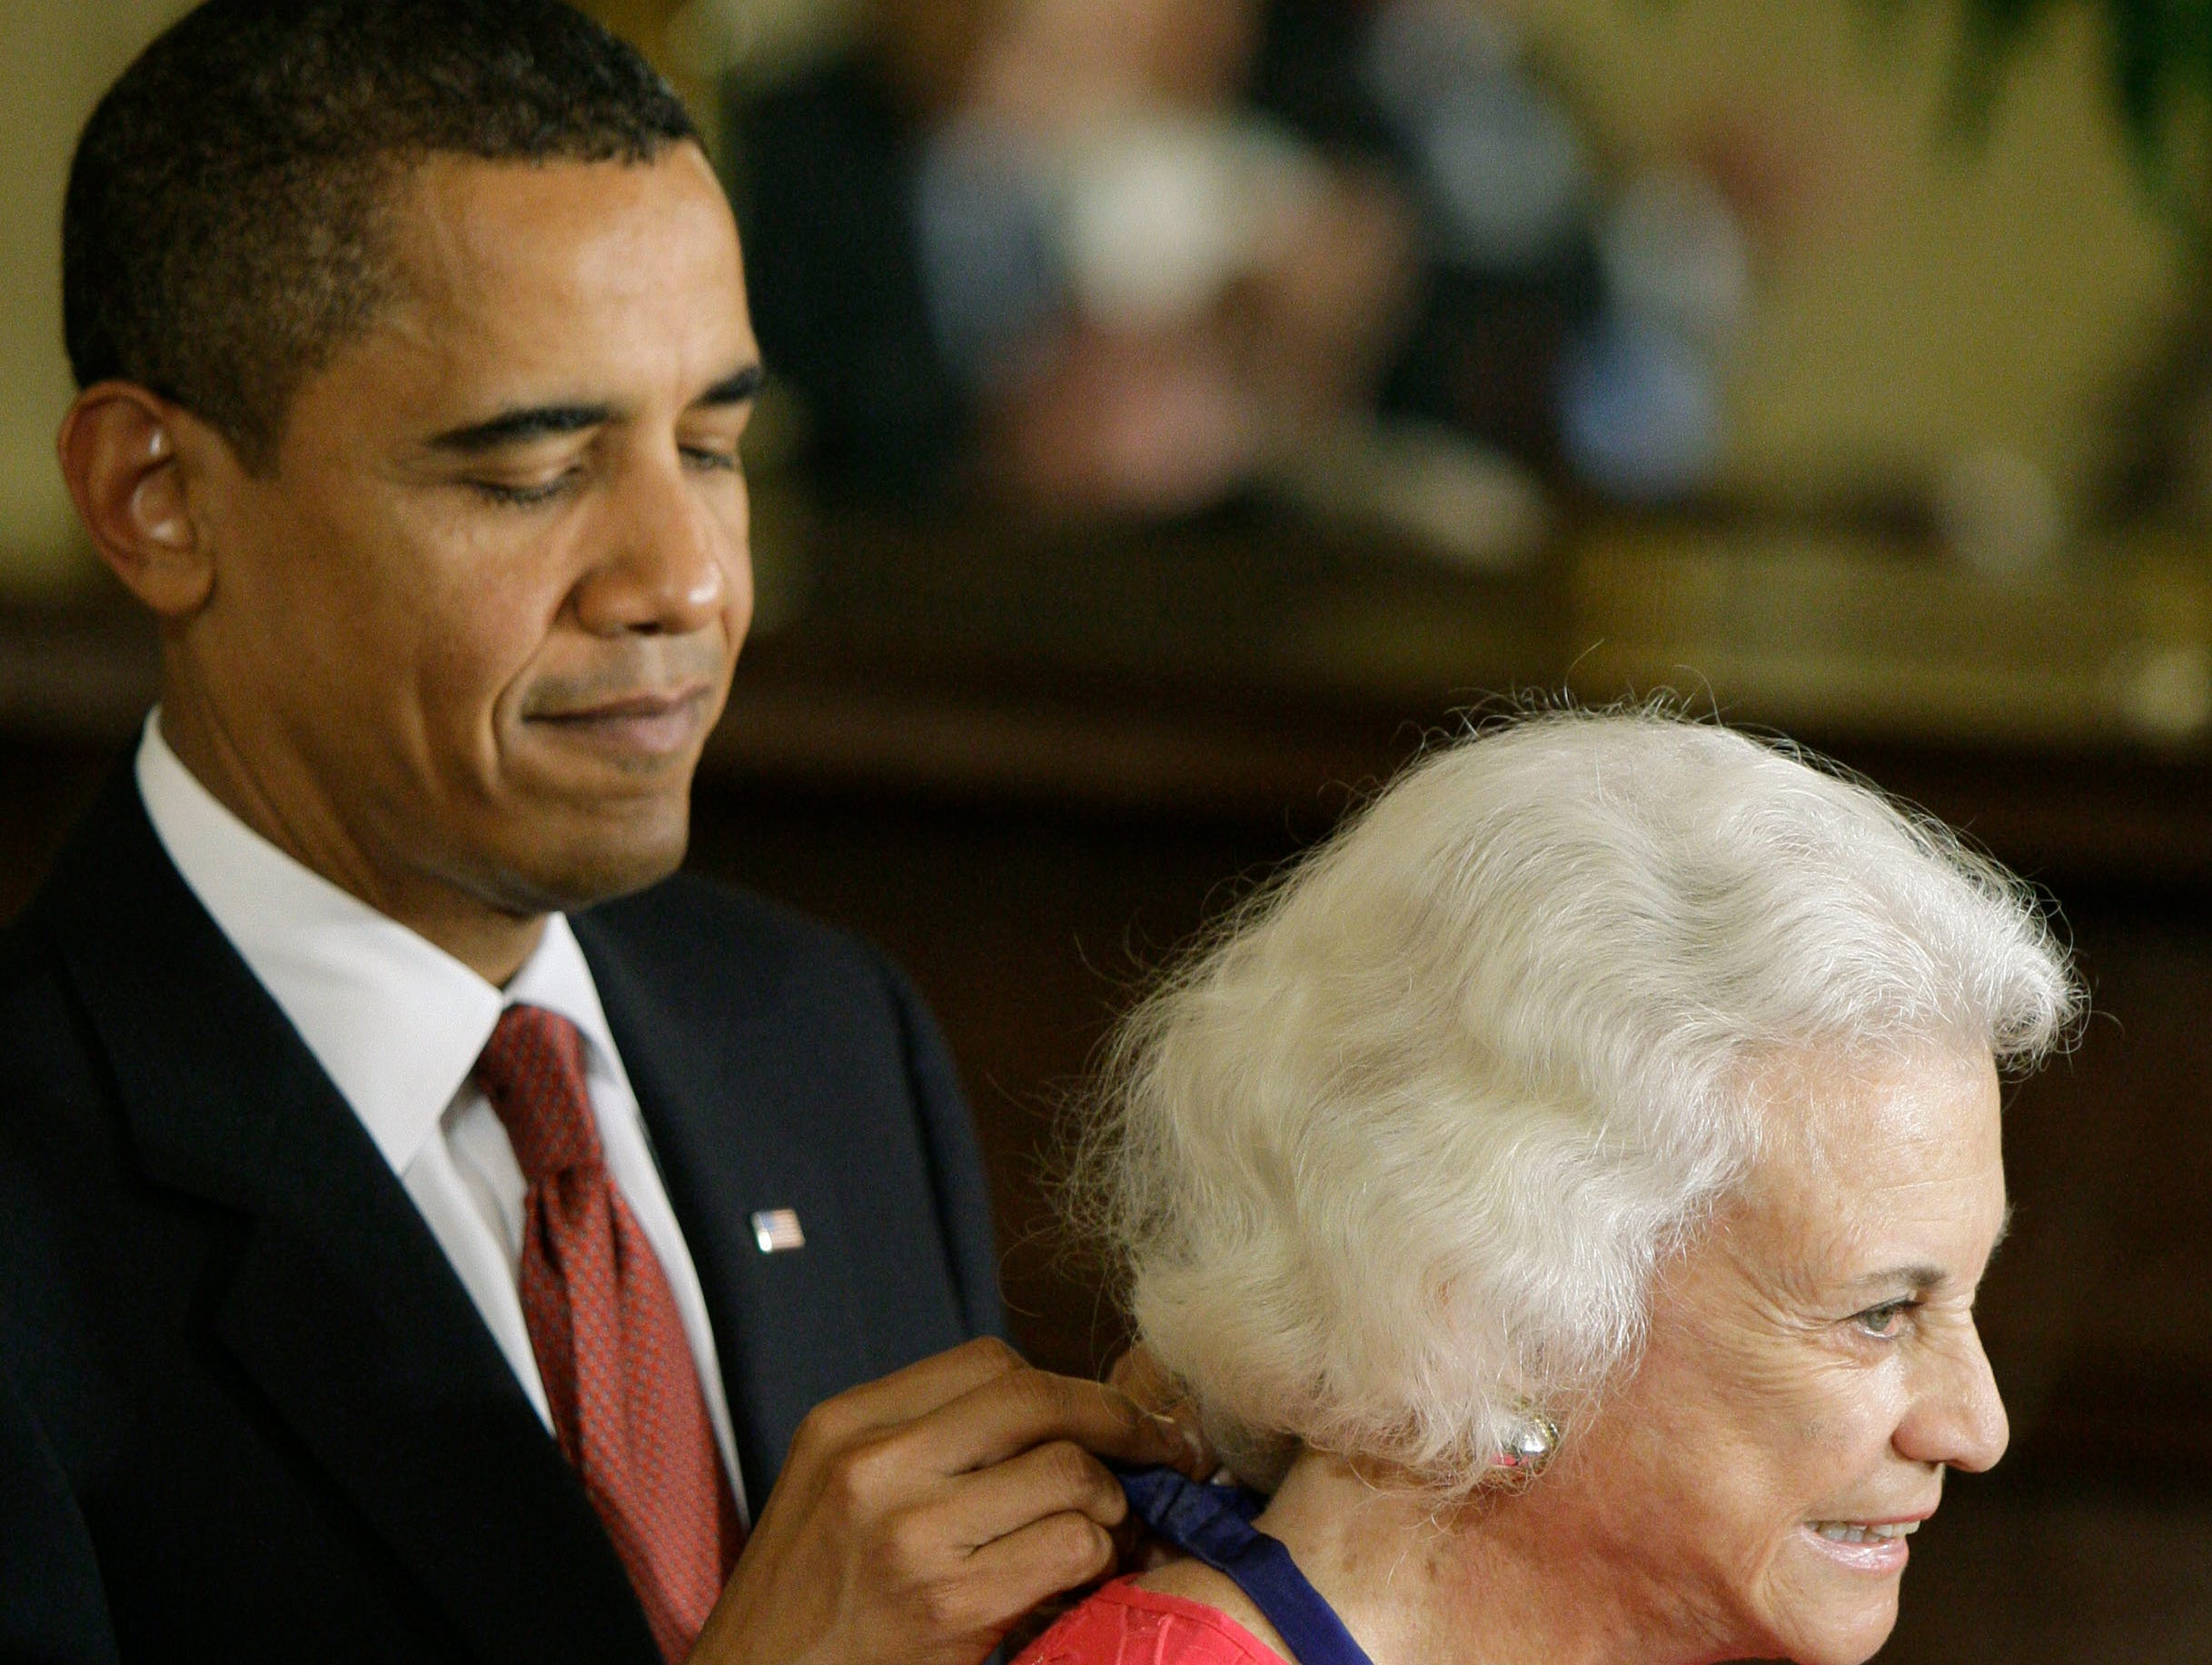 President Barack Obama places a 2009 Presidential Medal of Freedom around the neck of former Supreme Court Justice Sandra Day O'Connor, Wednesday, Aug. 12, 2009, during a ceremony in the East Room of the White House in Washington.